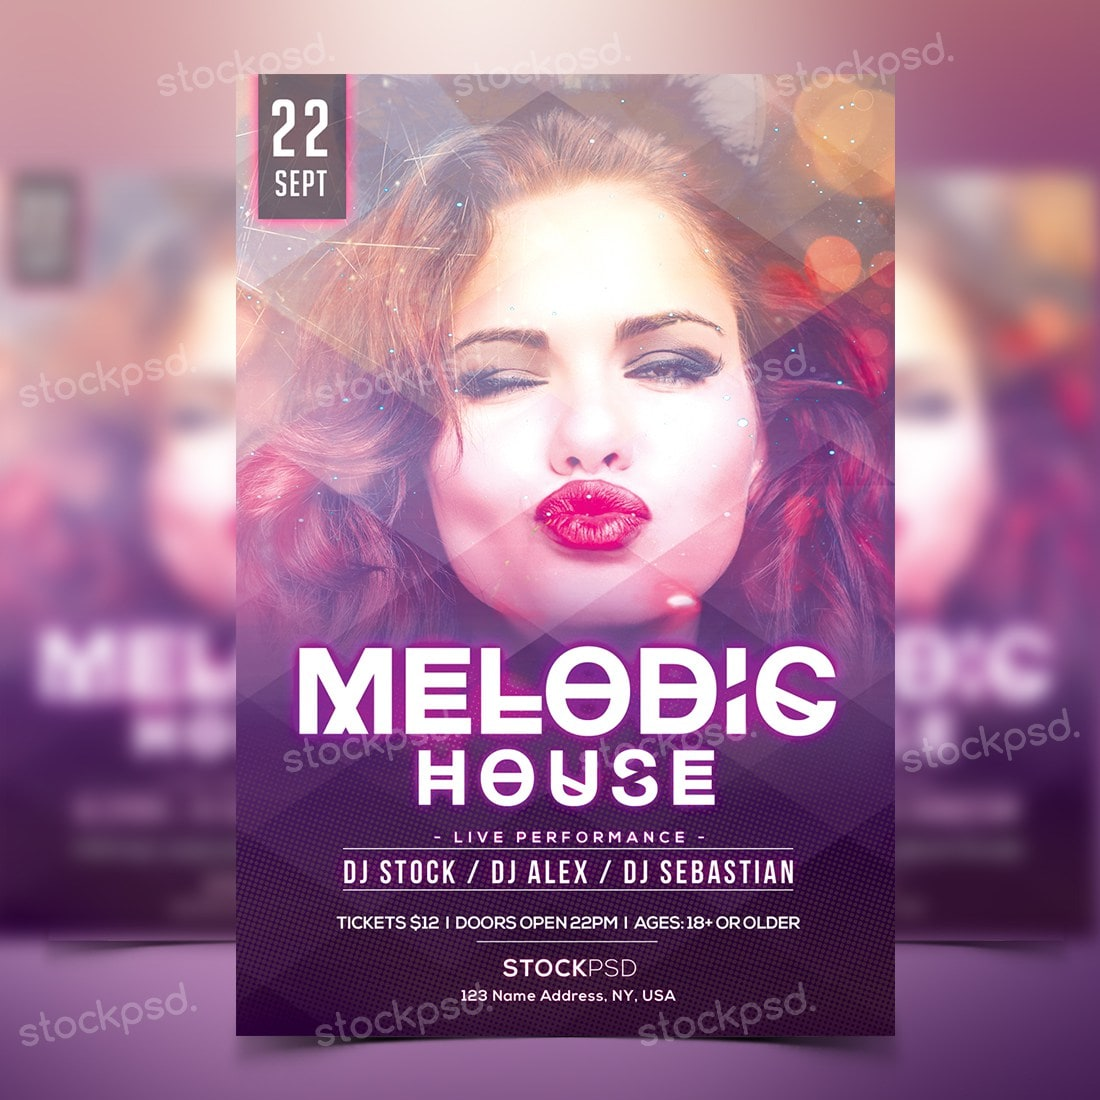 Melodic House Free Party Psd Flyer Template Freebiedesign